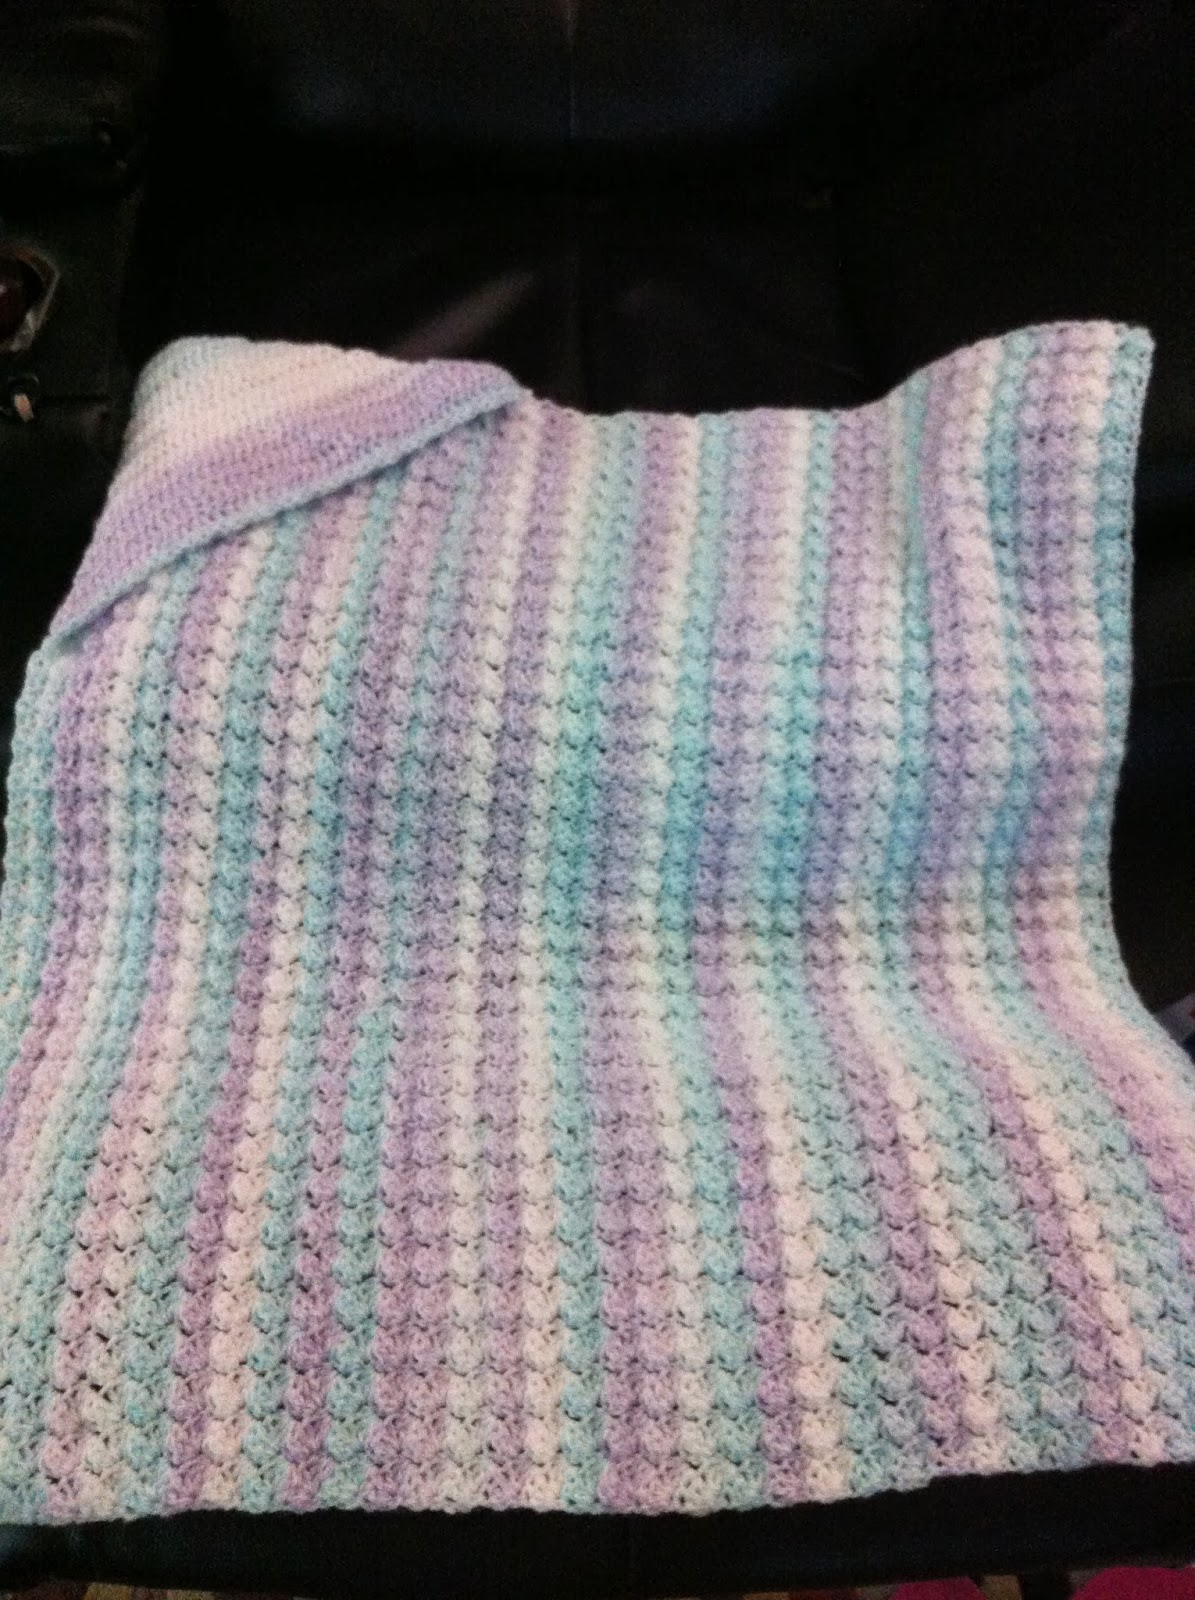 Free Crochet Patterns For Baby Blanket With Hood : Not My Nanas Crochet!: Crochet Hooded Baby Blanket - Free ...